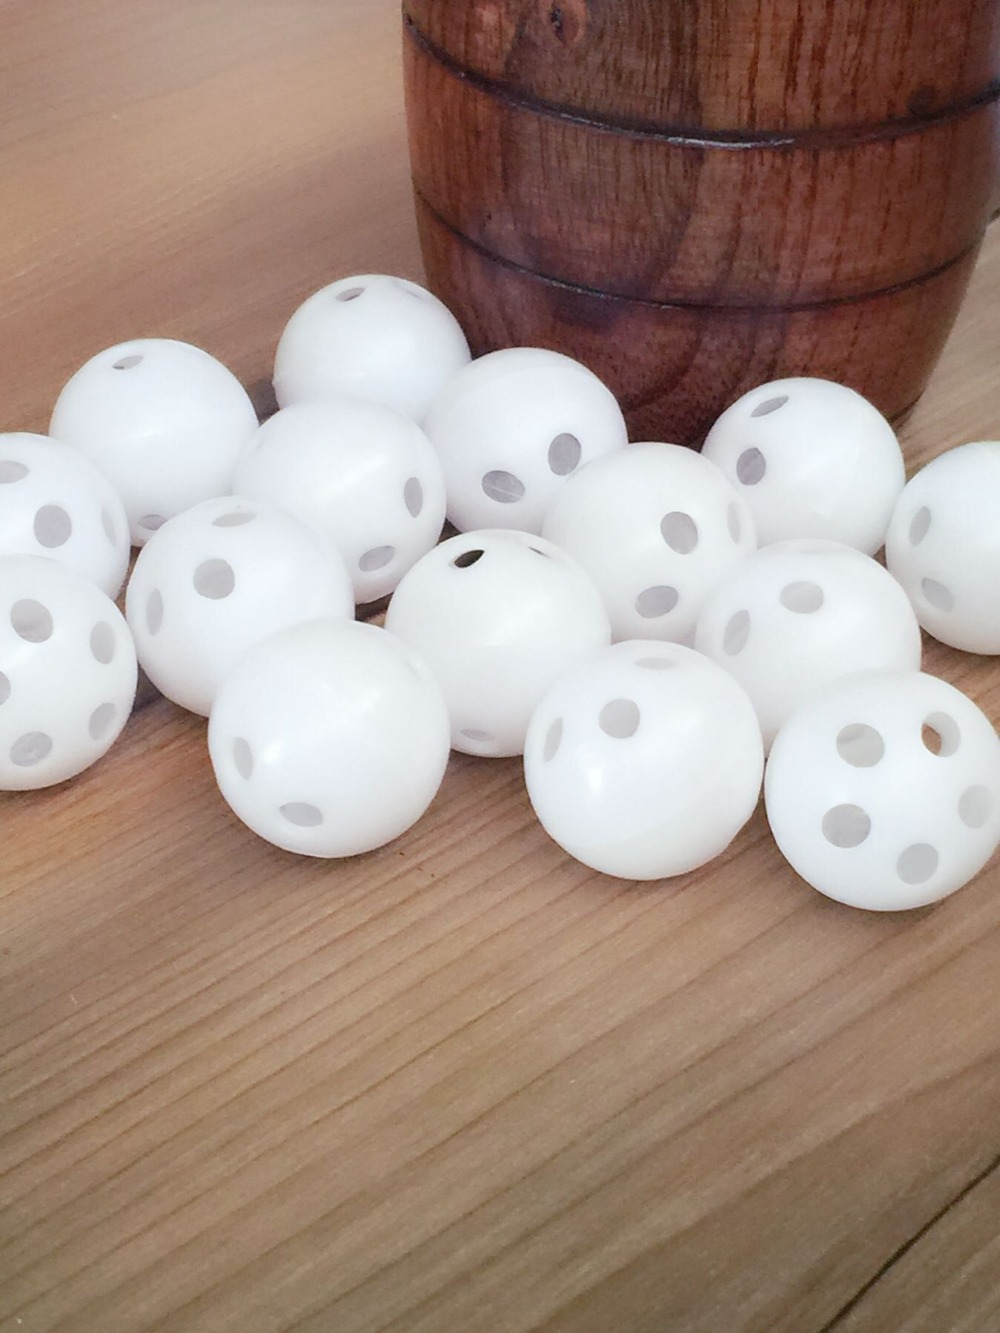 NEW 50pcs 28mm White Toy Rattle Ball Repair Replace Noise Maker Box For Toy Bear Doll